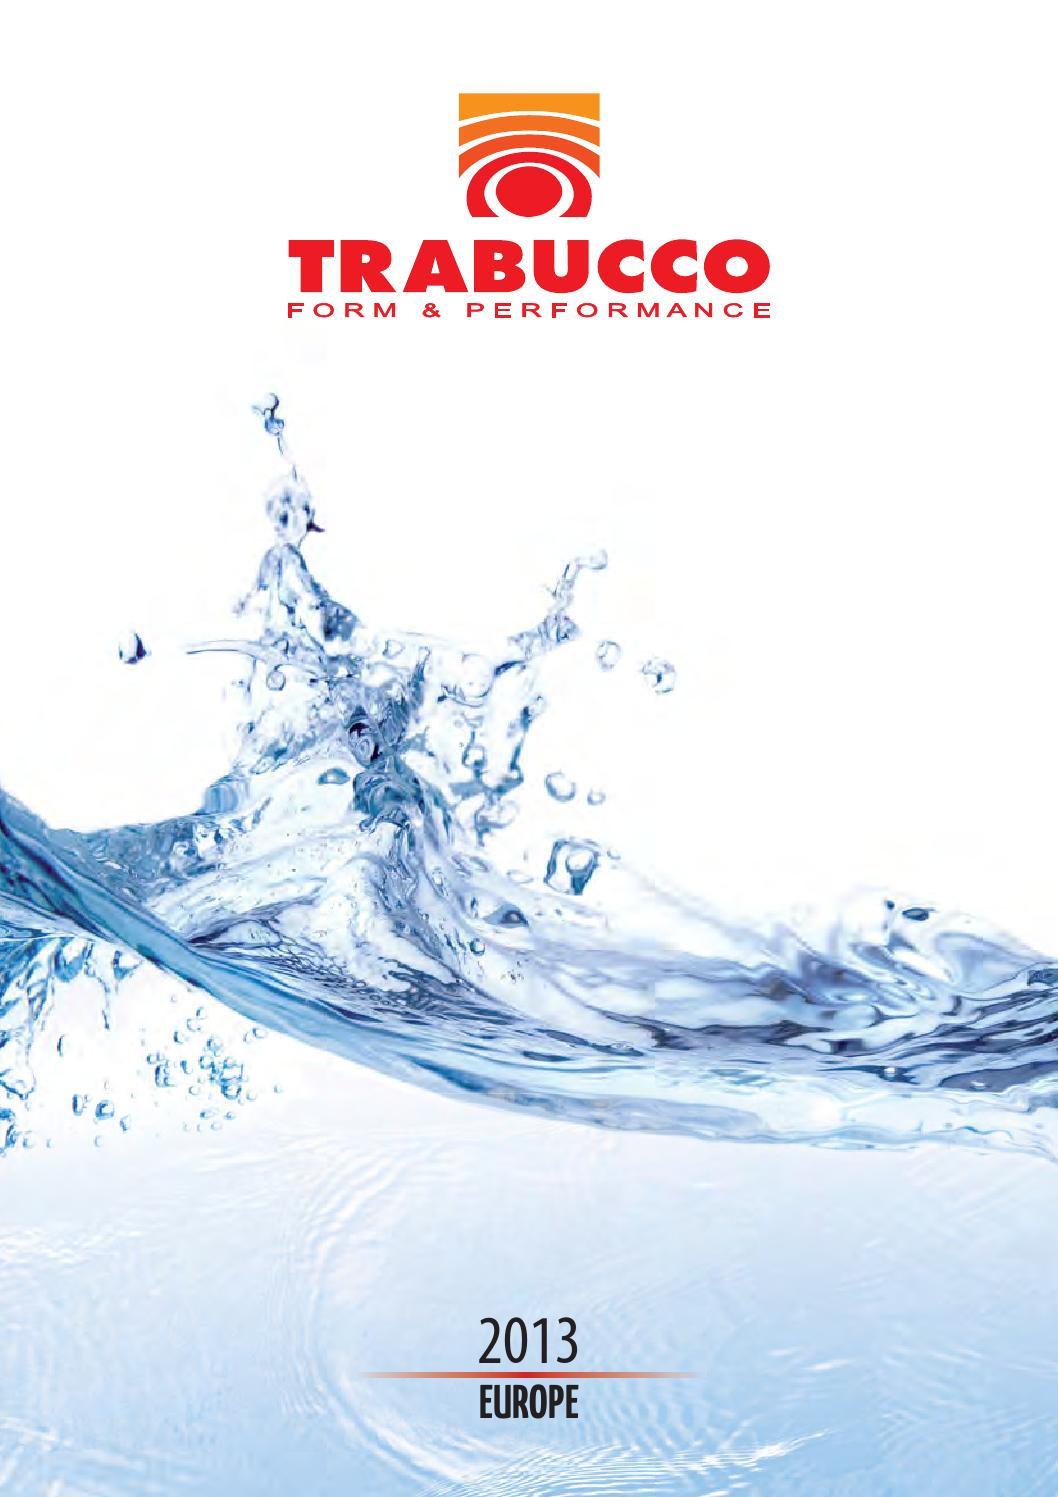 Trabucco 2013 by chris crampe - issuu